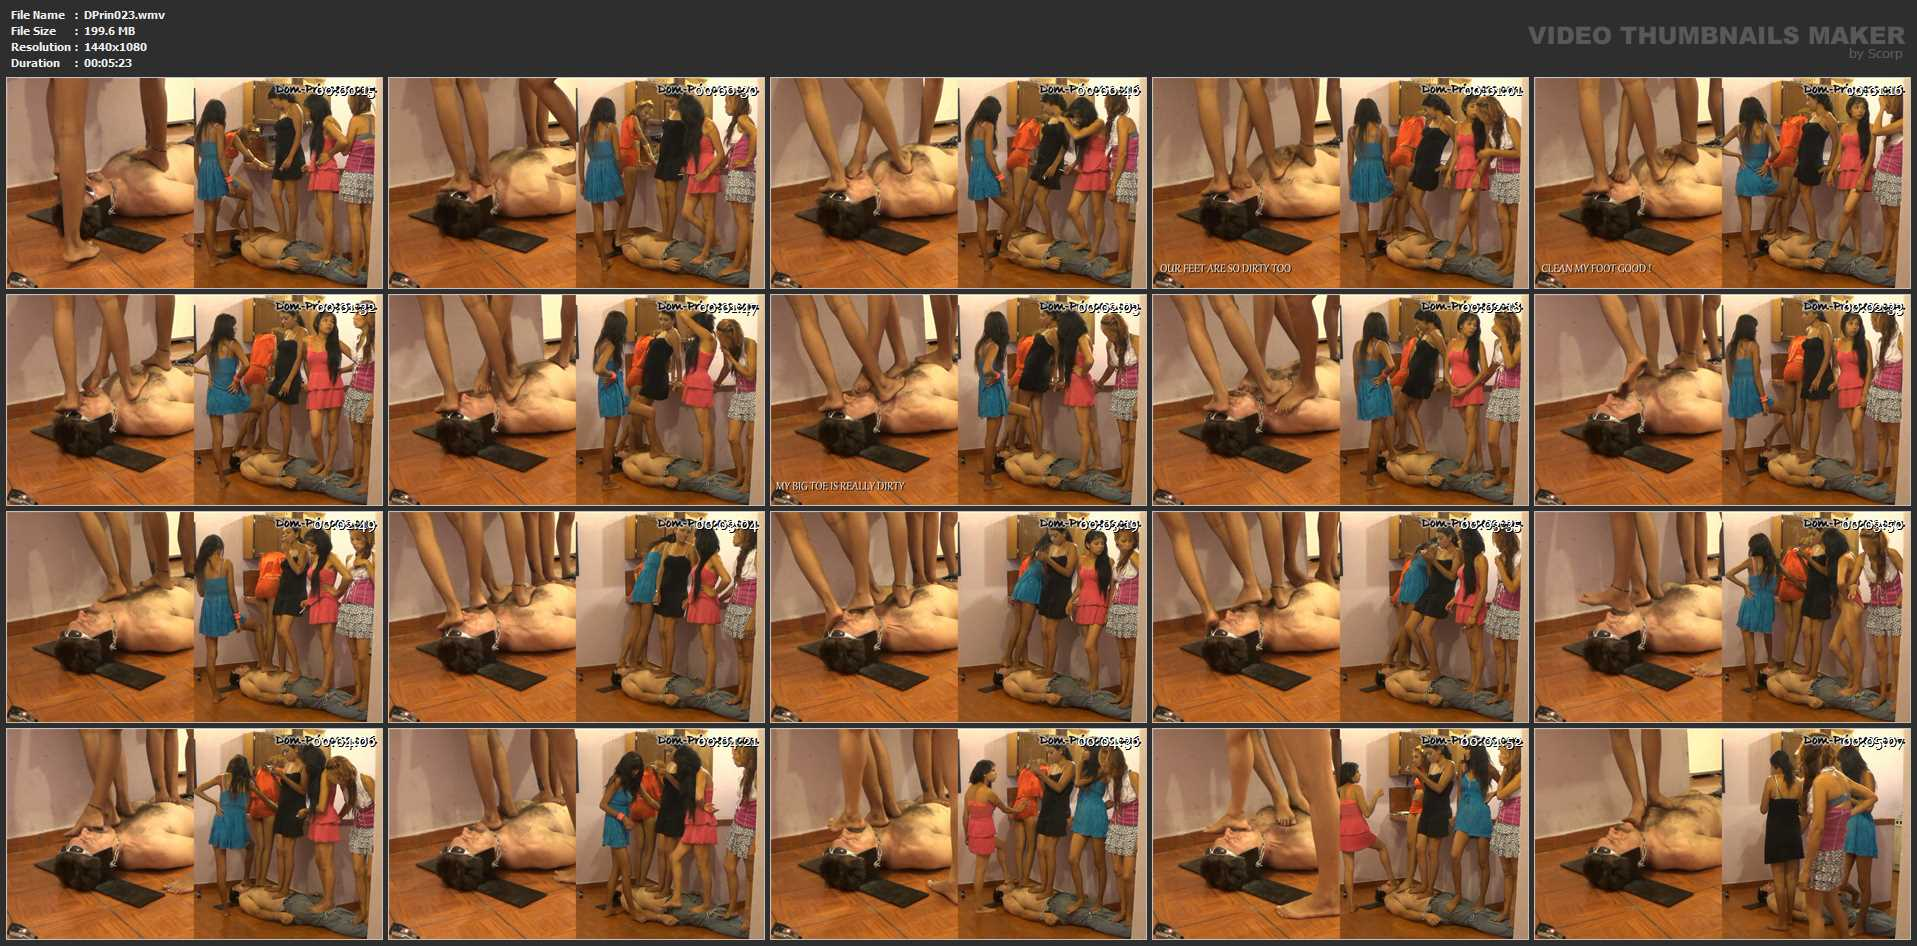 [DOM-PRINCESS] The Stand on Poop Session Part 1 [FULL HD][1080p][WMV]